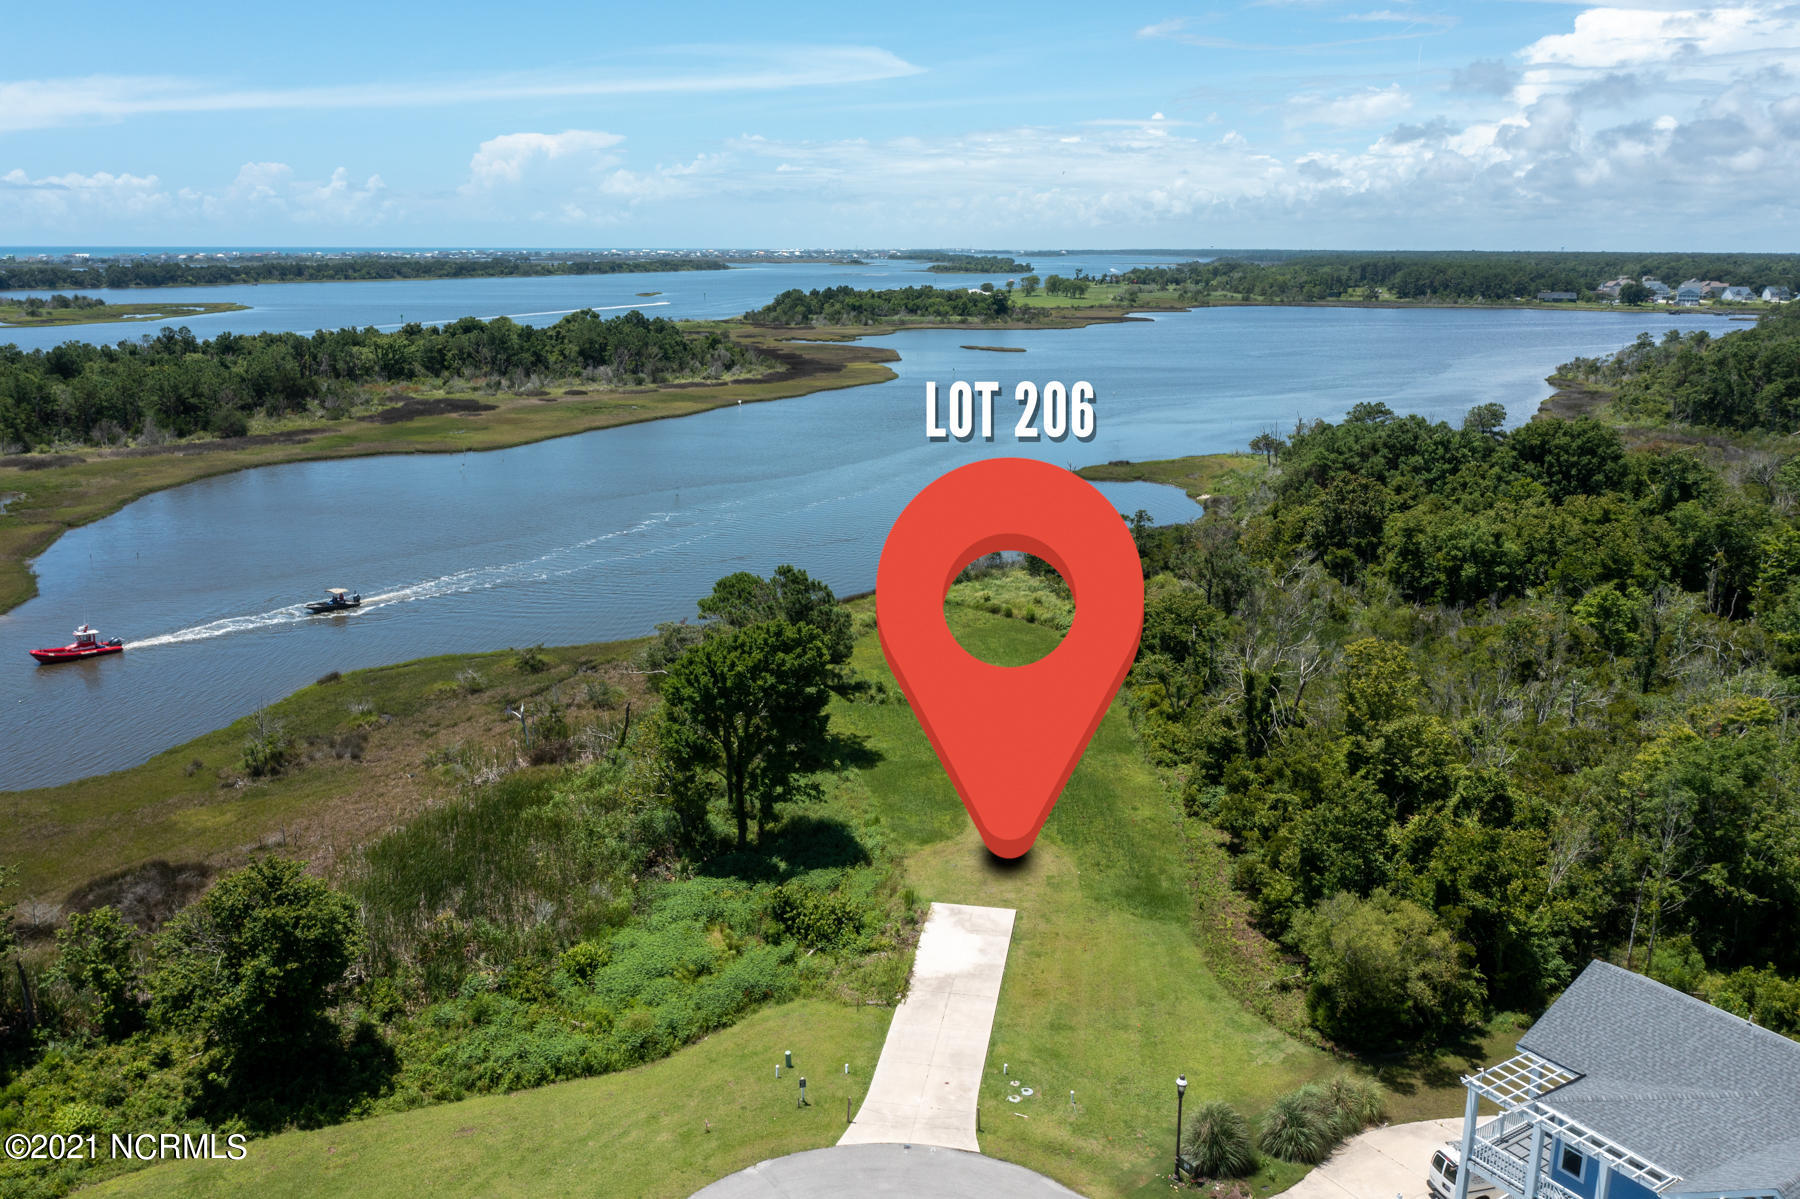 Vacant homesite, ready to build in luxury waterfront community of Summerhouse on Everett Bay!  All the amenities are in place in this idyllic neighborhood, featuring a huge clubhouse, pool, fitness center, day docks, boat ramp, boat storage, pickle-ball court, tennis court, basketball court, running trails, playground, and more! With our Featured Builders, you can design your coastal home and start living the beach life in no time!  Homesite is located in the VE Flood Zone. Call today for more information!